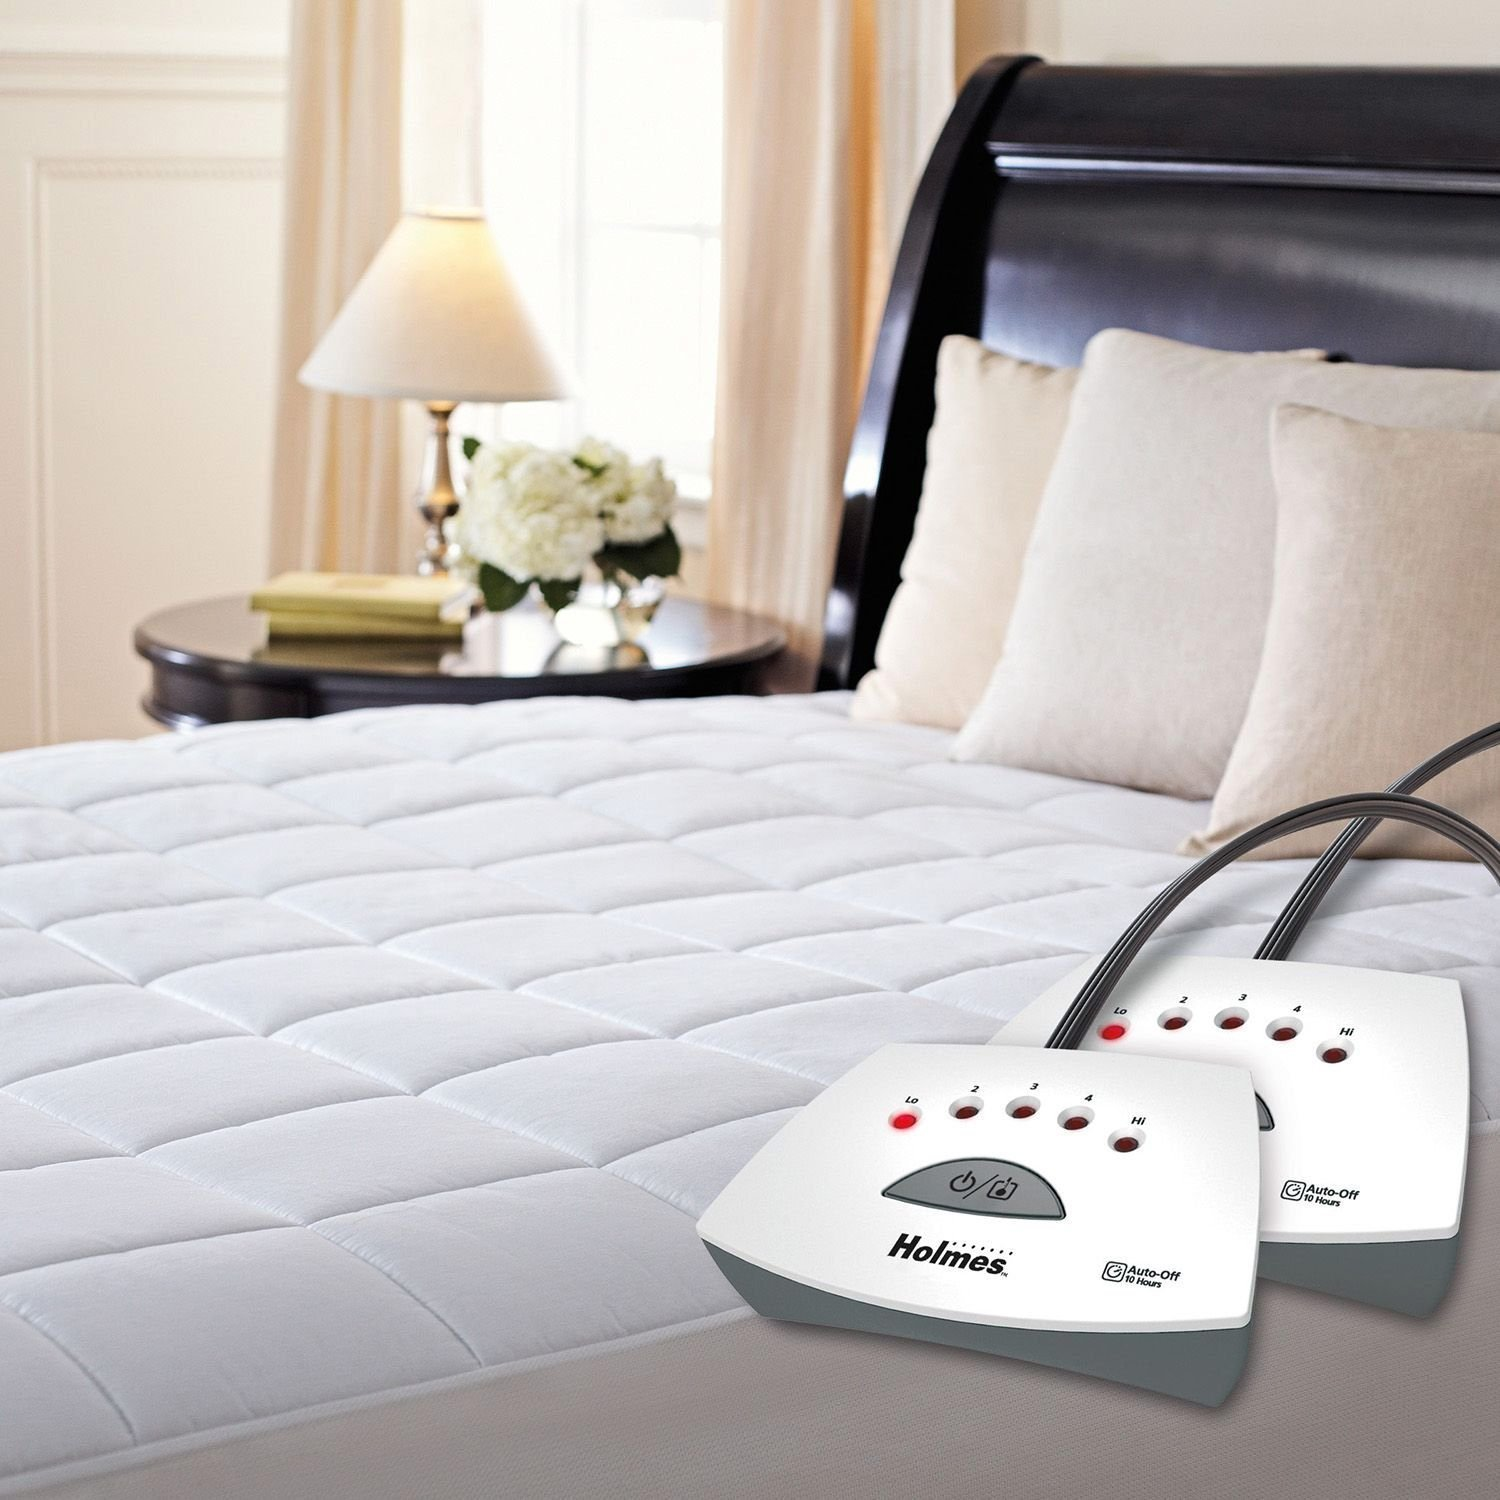 Holmes Best Heated Mattress Pad Review by www.snoremagazine.com